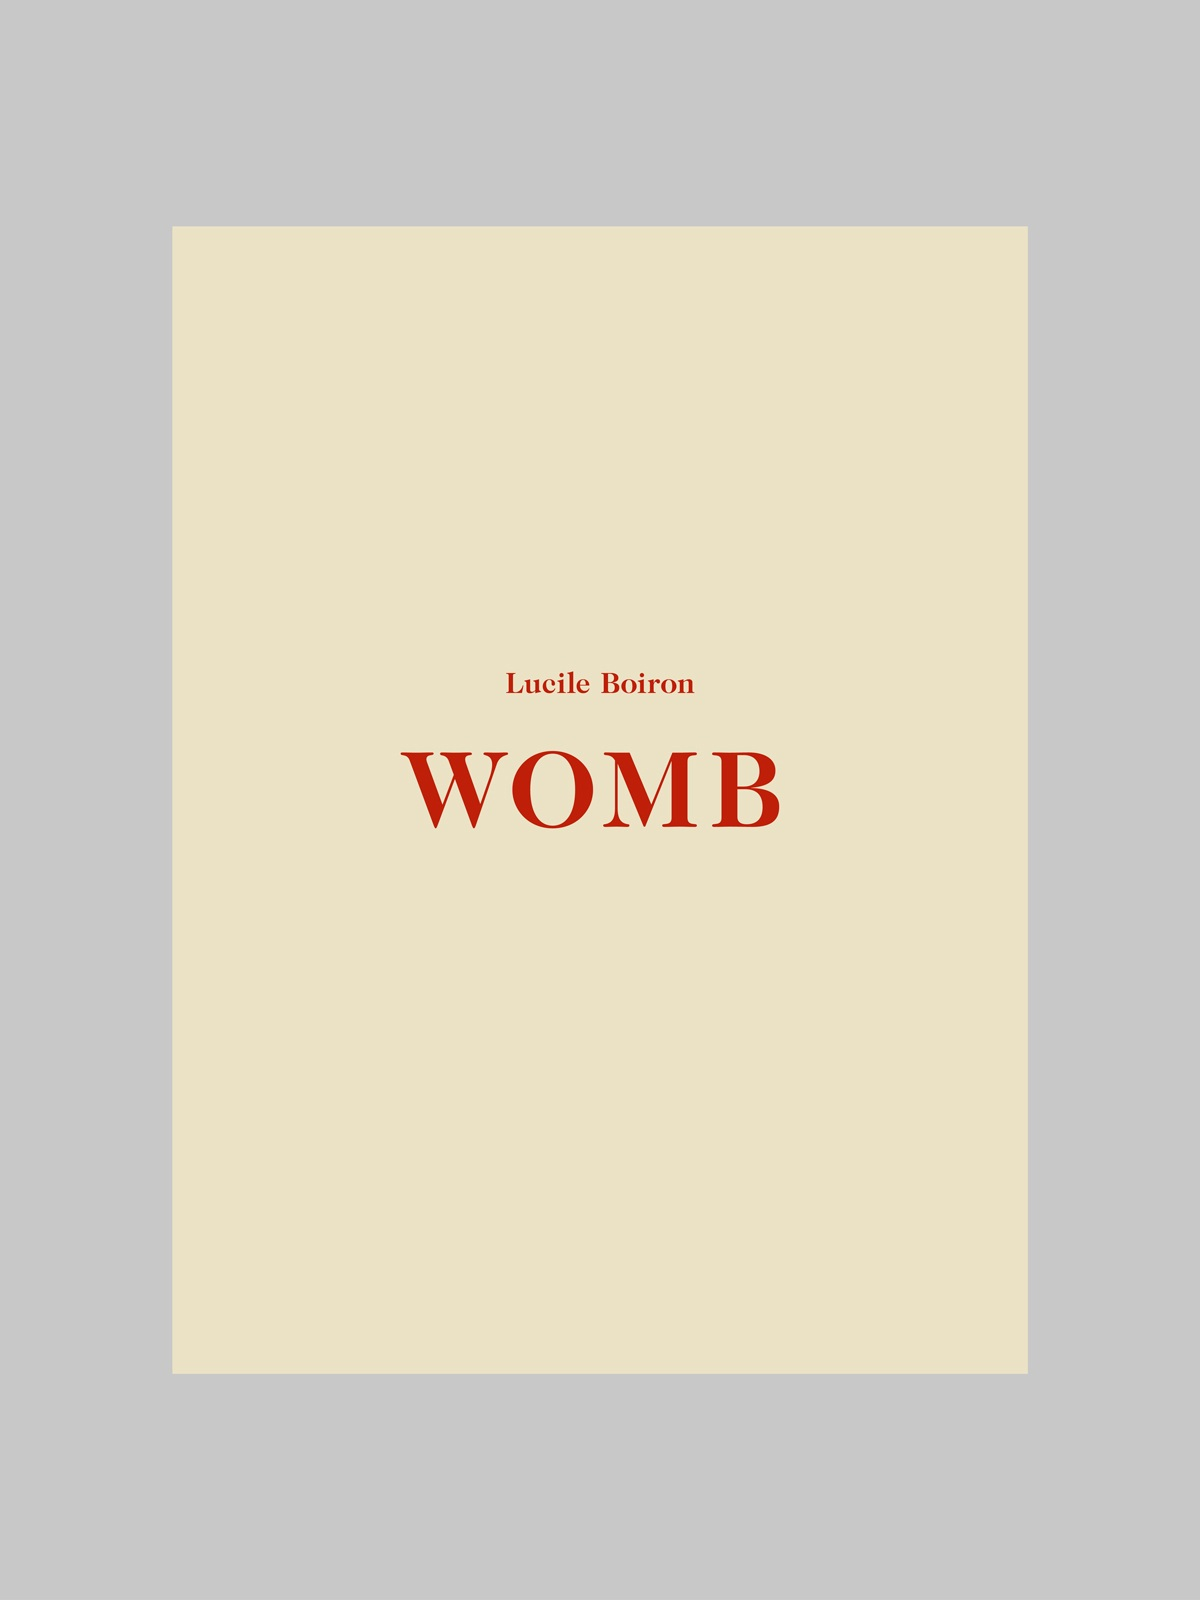 LM-Lucile-Boiron-Womb-13.jpg